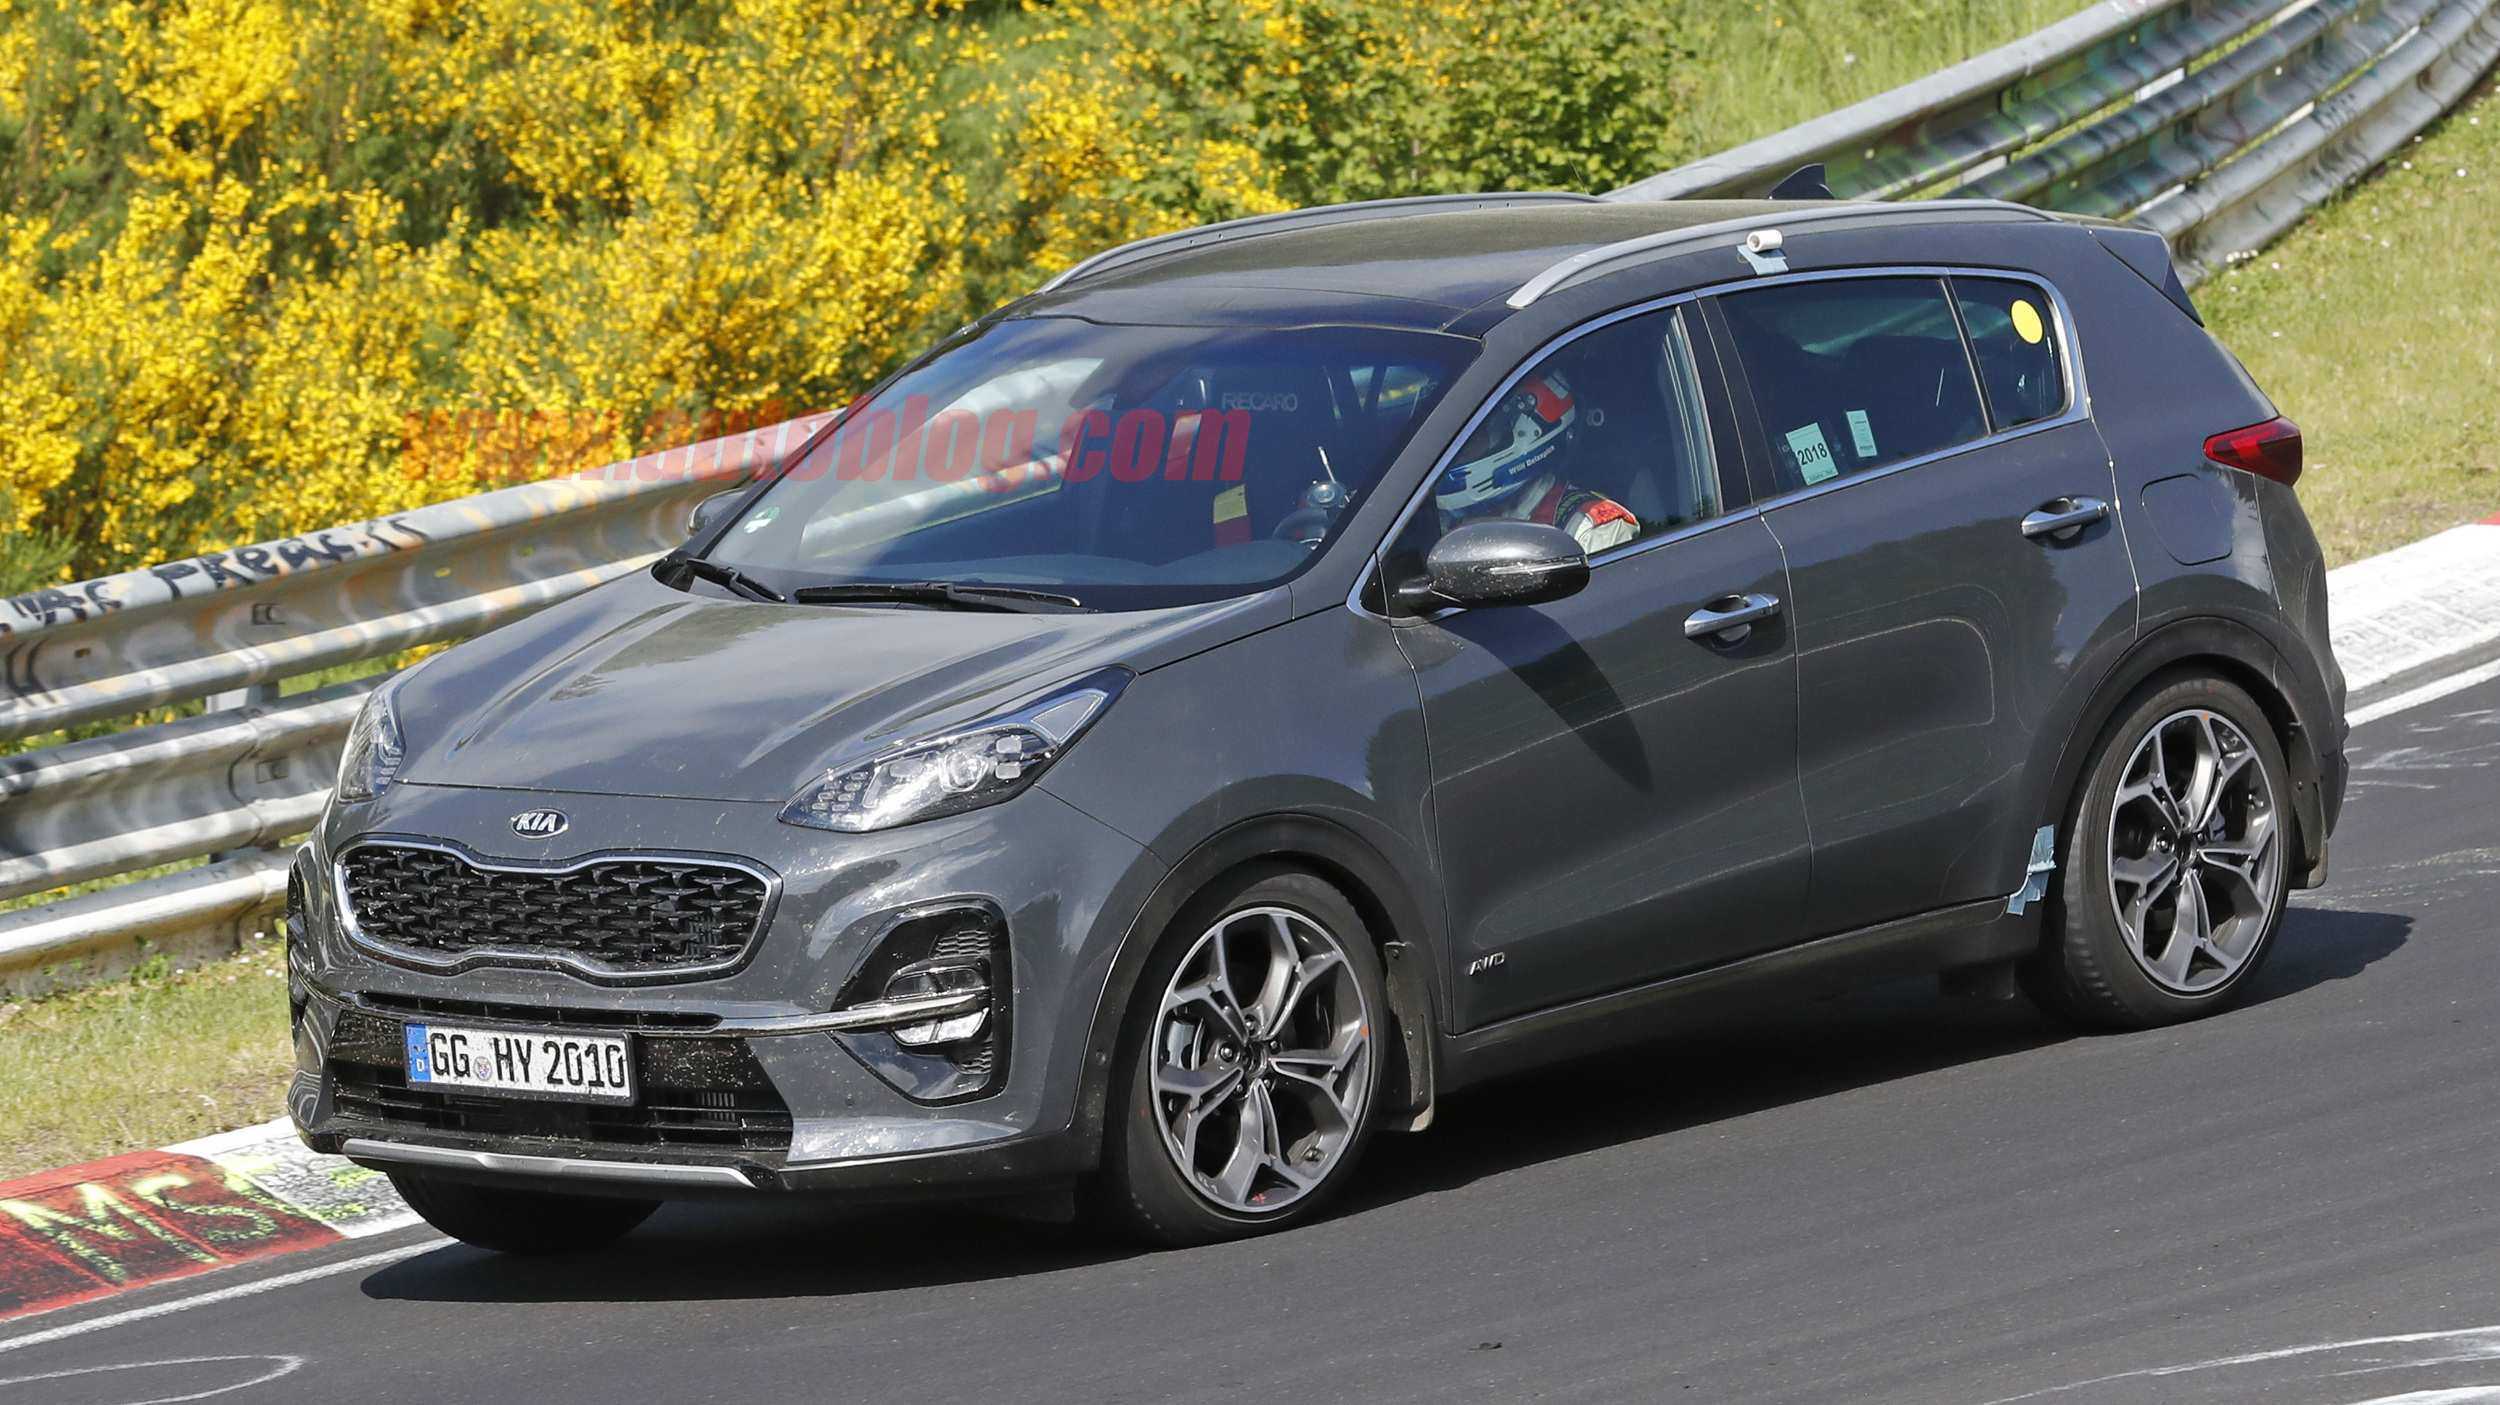 26 New When Does The 2020 Kia Sportage Come Out Redesign And Review